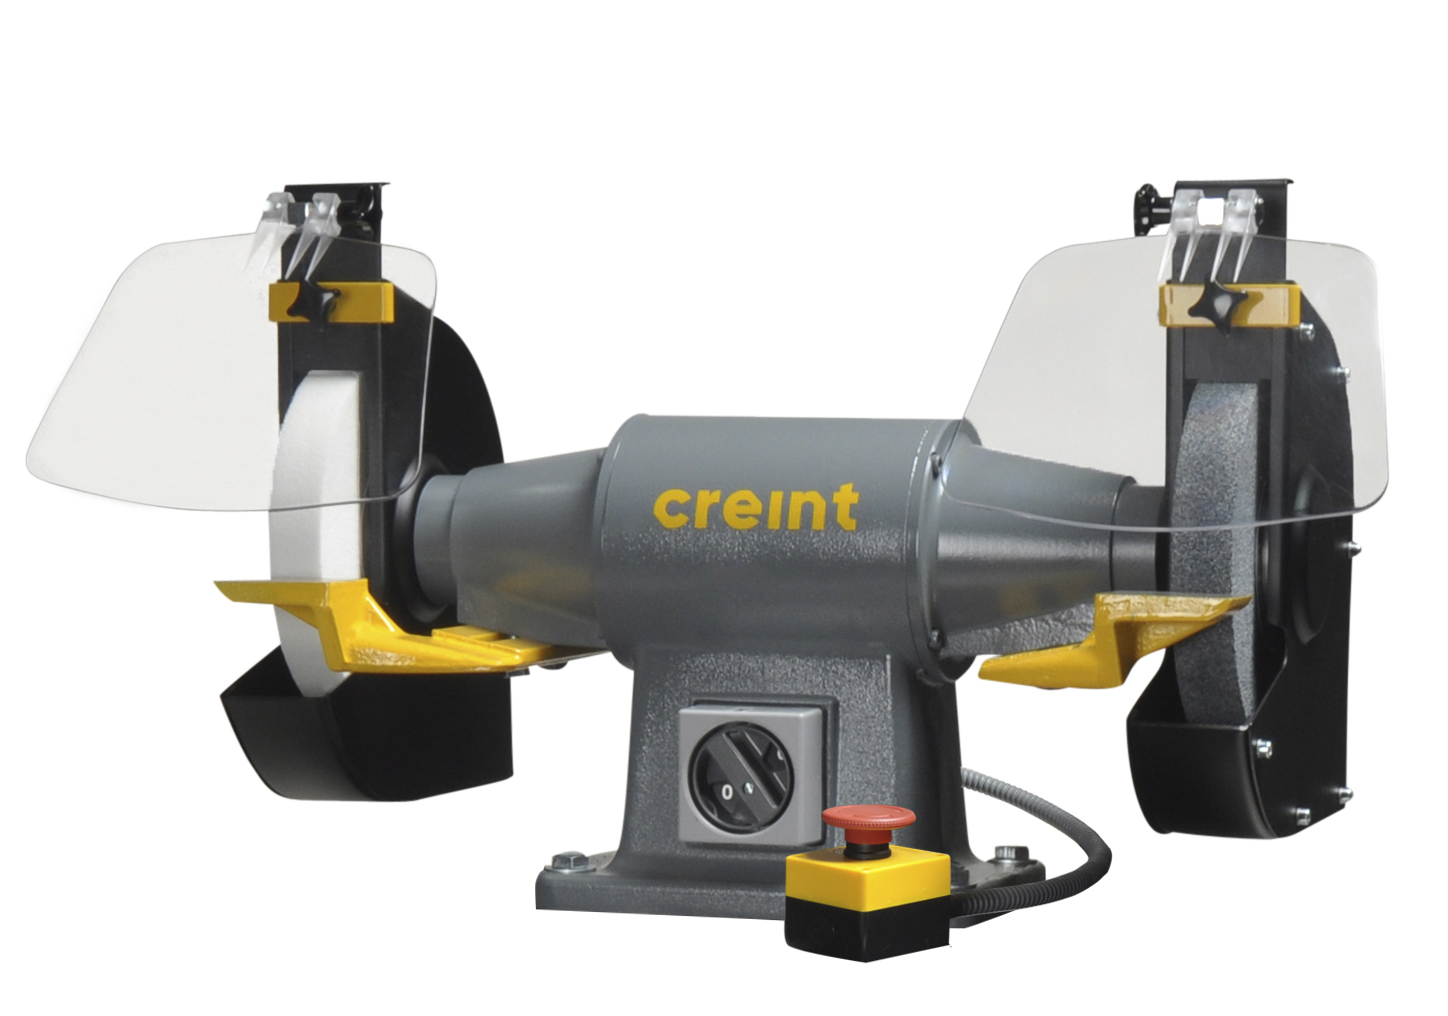 050728-Creint-GIHD200-3-bench-model